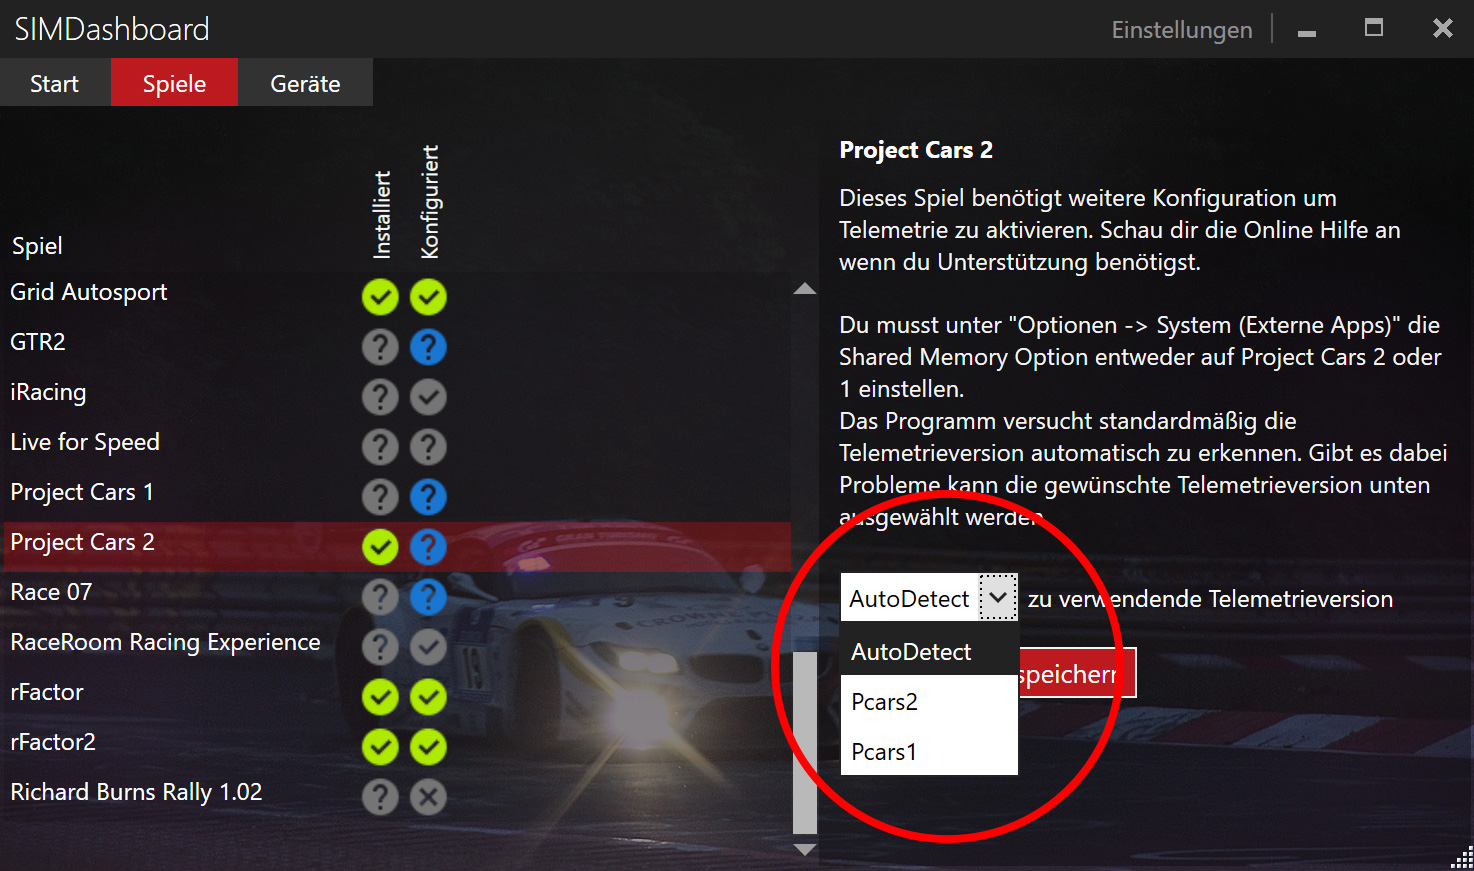 Enable Project Cars 2 Telemetry (PC) - SIM Dashboard